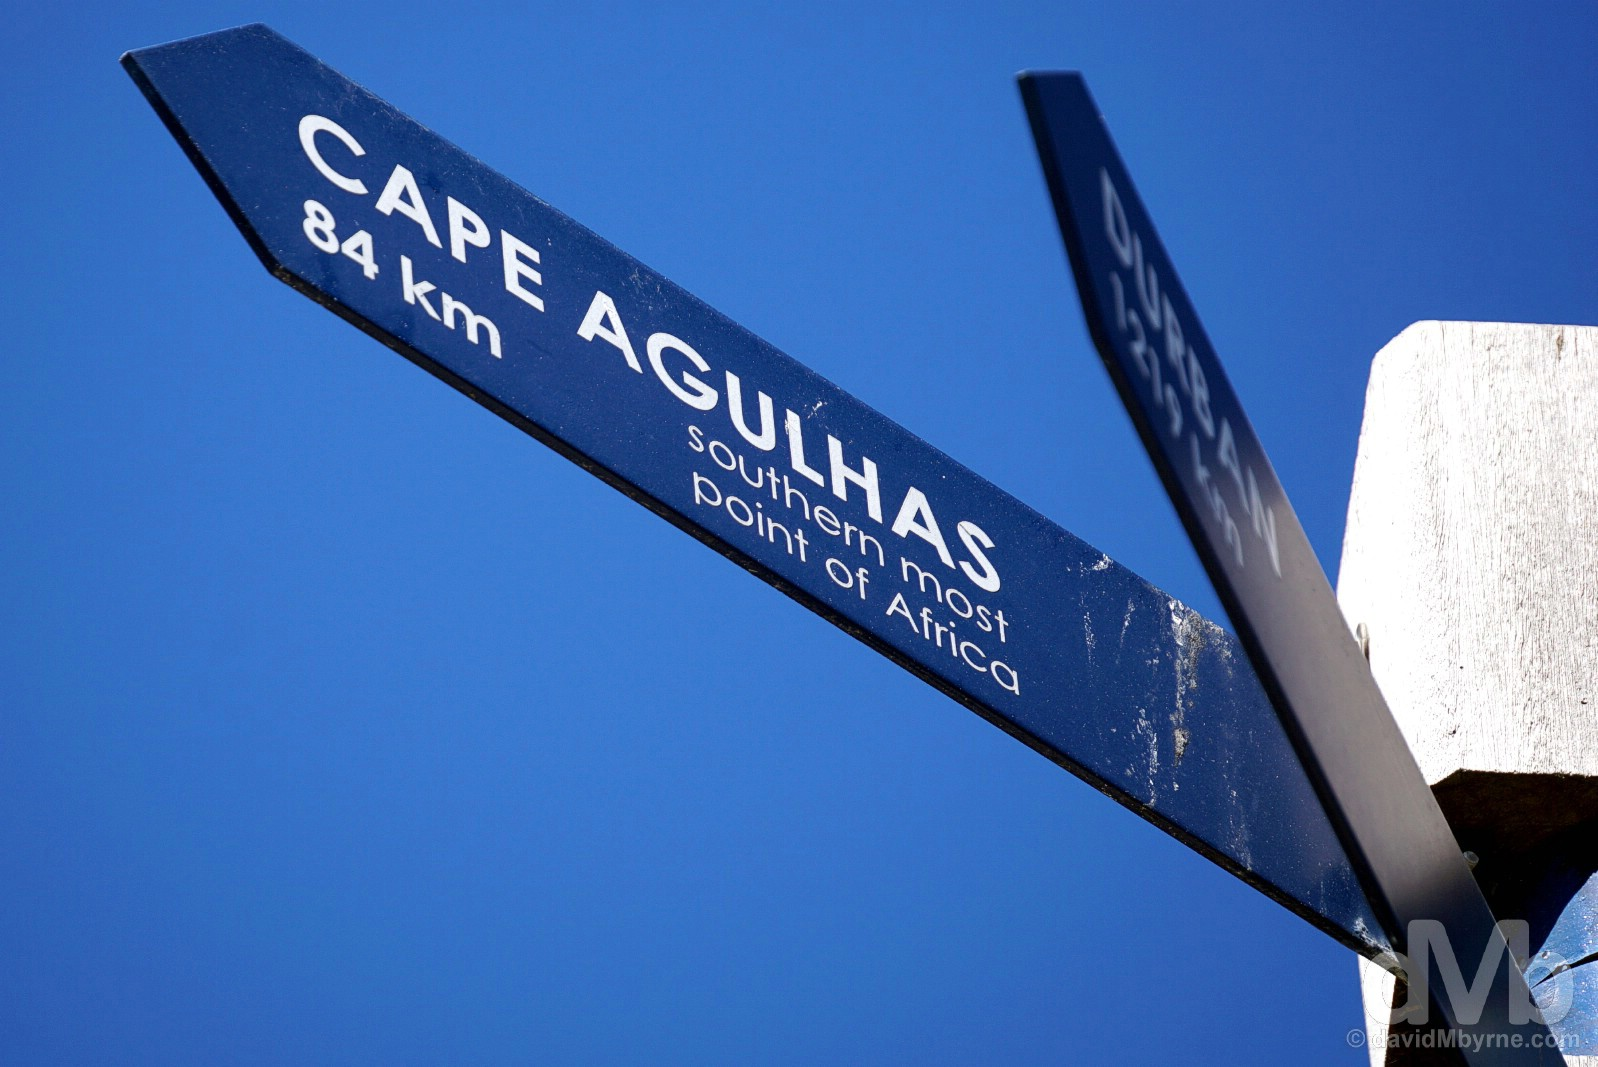 Cape Agulhas that way. Marine Drive, Hermanus, Overberg, Western Cape, South Africa. February 21, 2017.